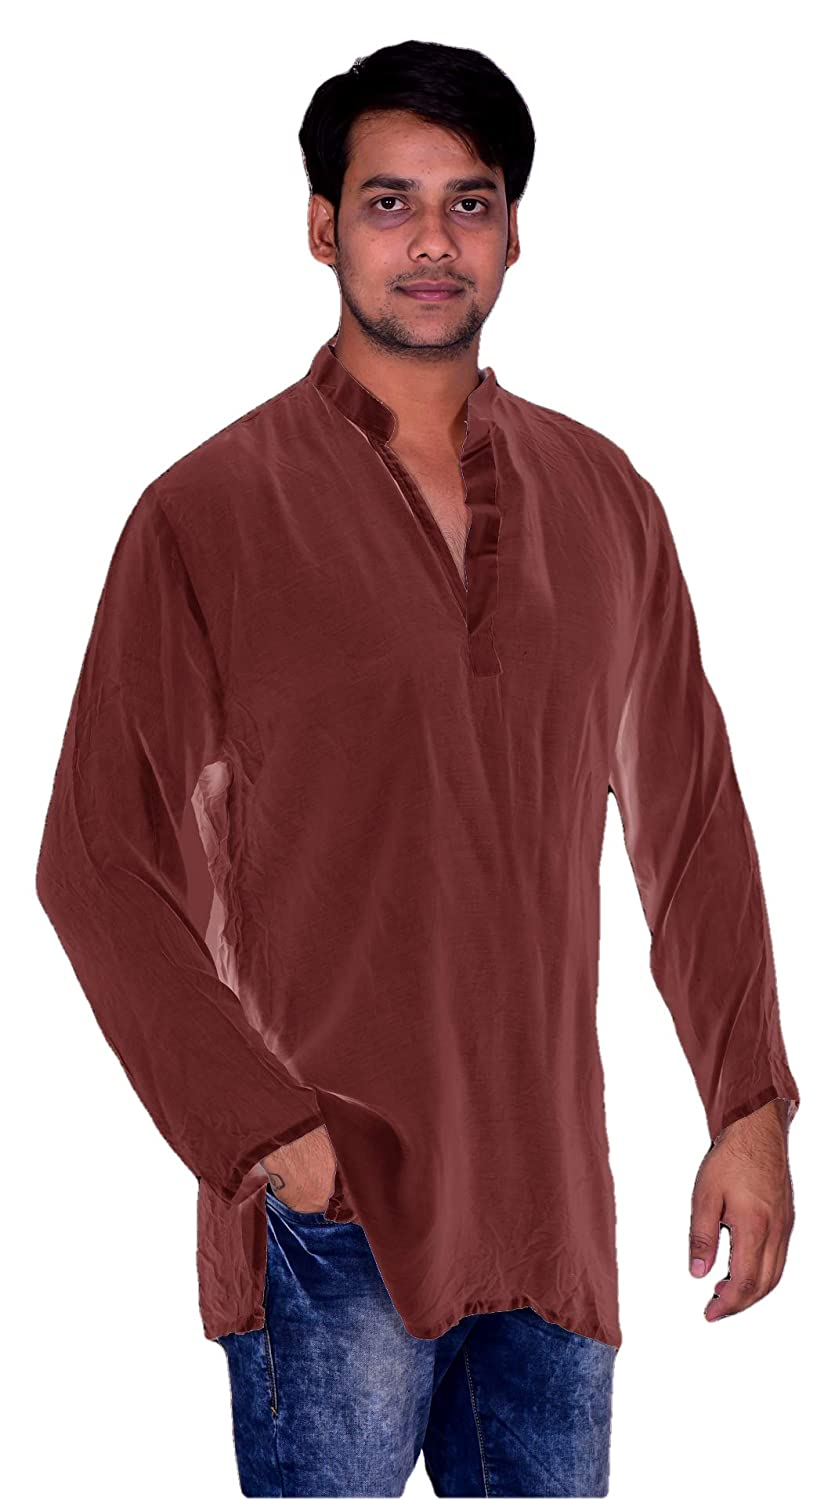 Lakkar Haveli Mens Indian Tunic Button Down Shirts Shirt Kurta Solid Brown Color 100/% Cotton Big Tall